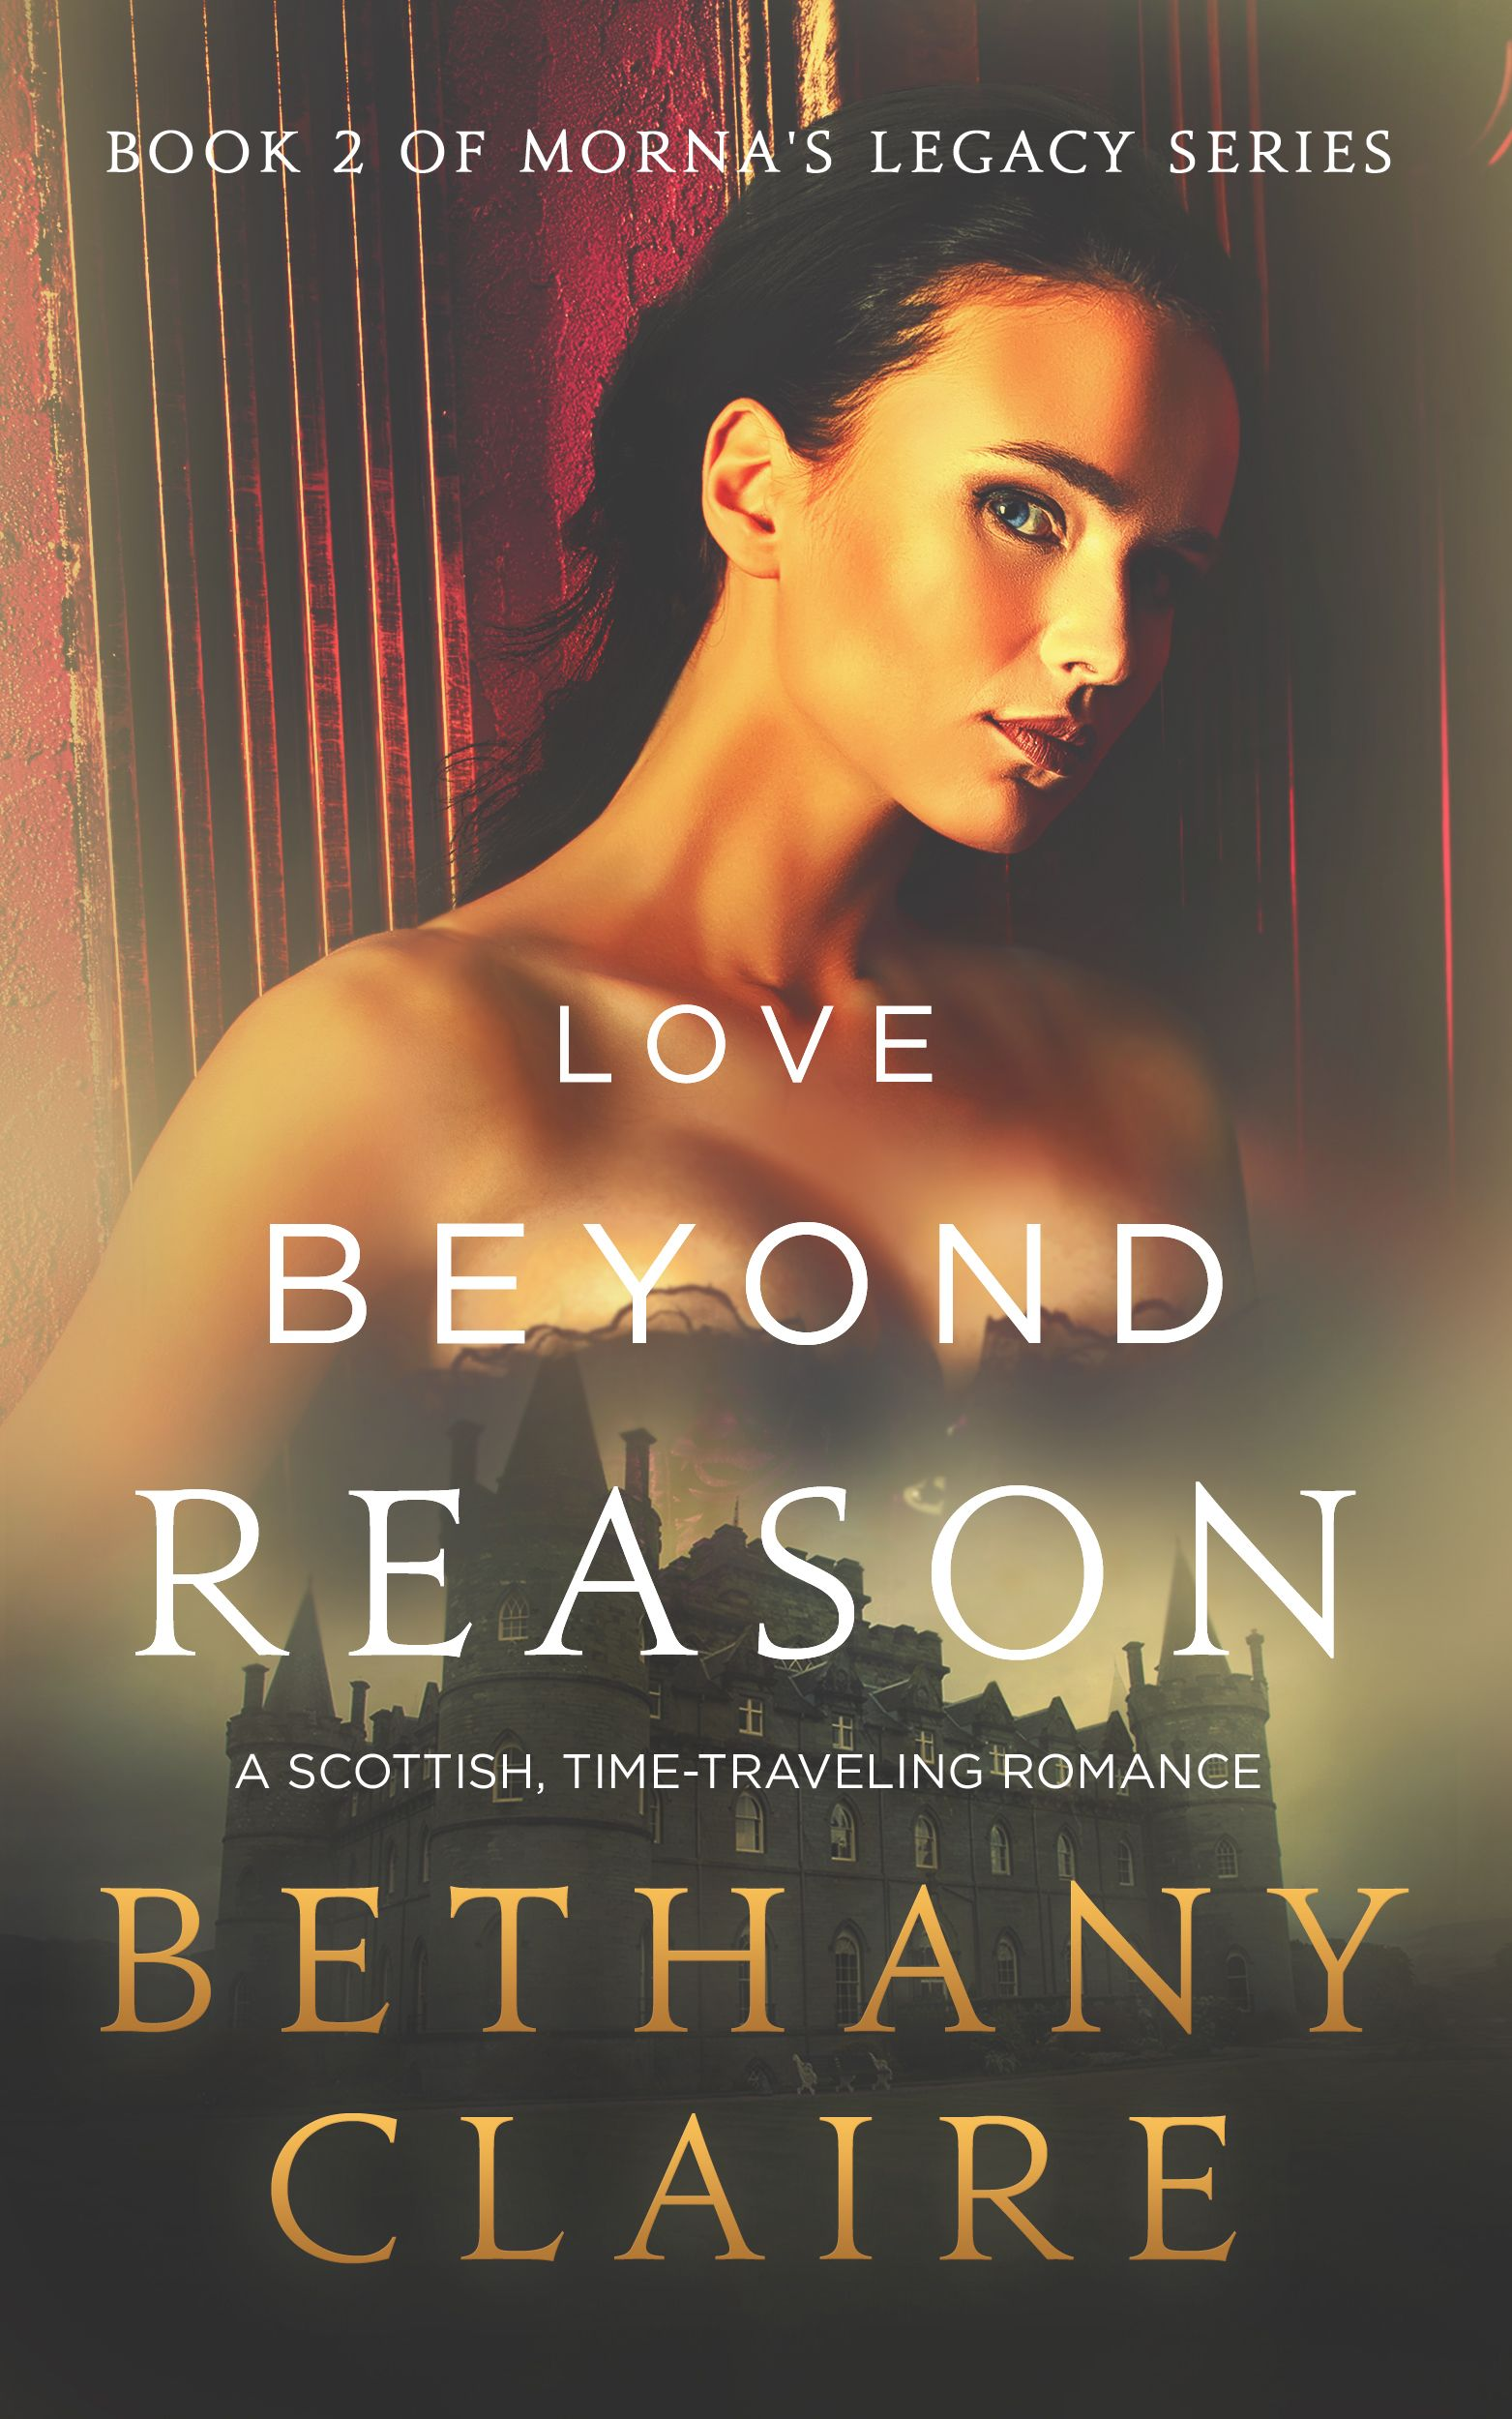 Love Beyond Reason Book 2 of Morna's Legacy Series